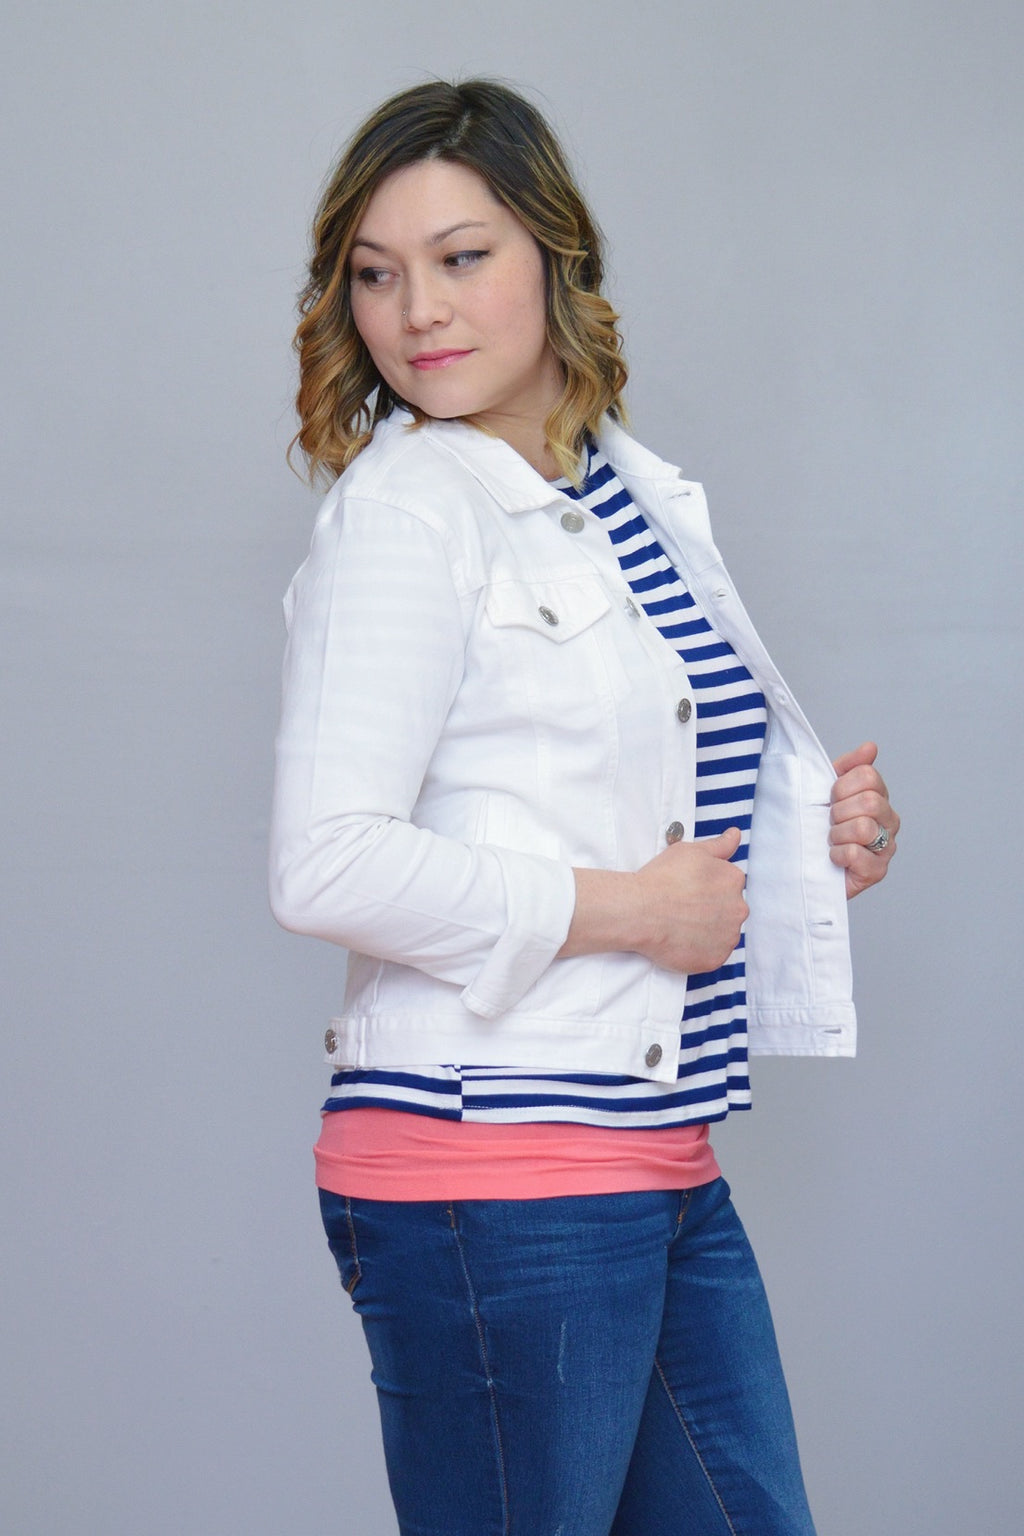 Bria Bella & Co - White Denim Jacket